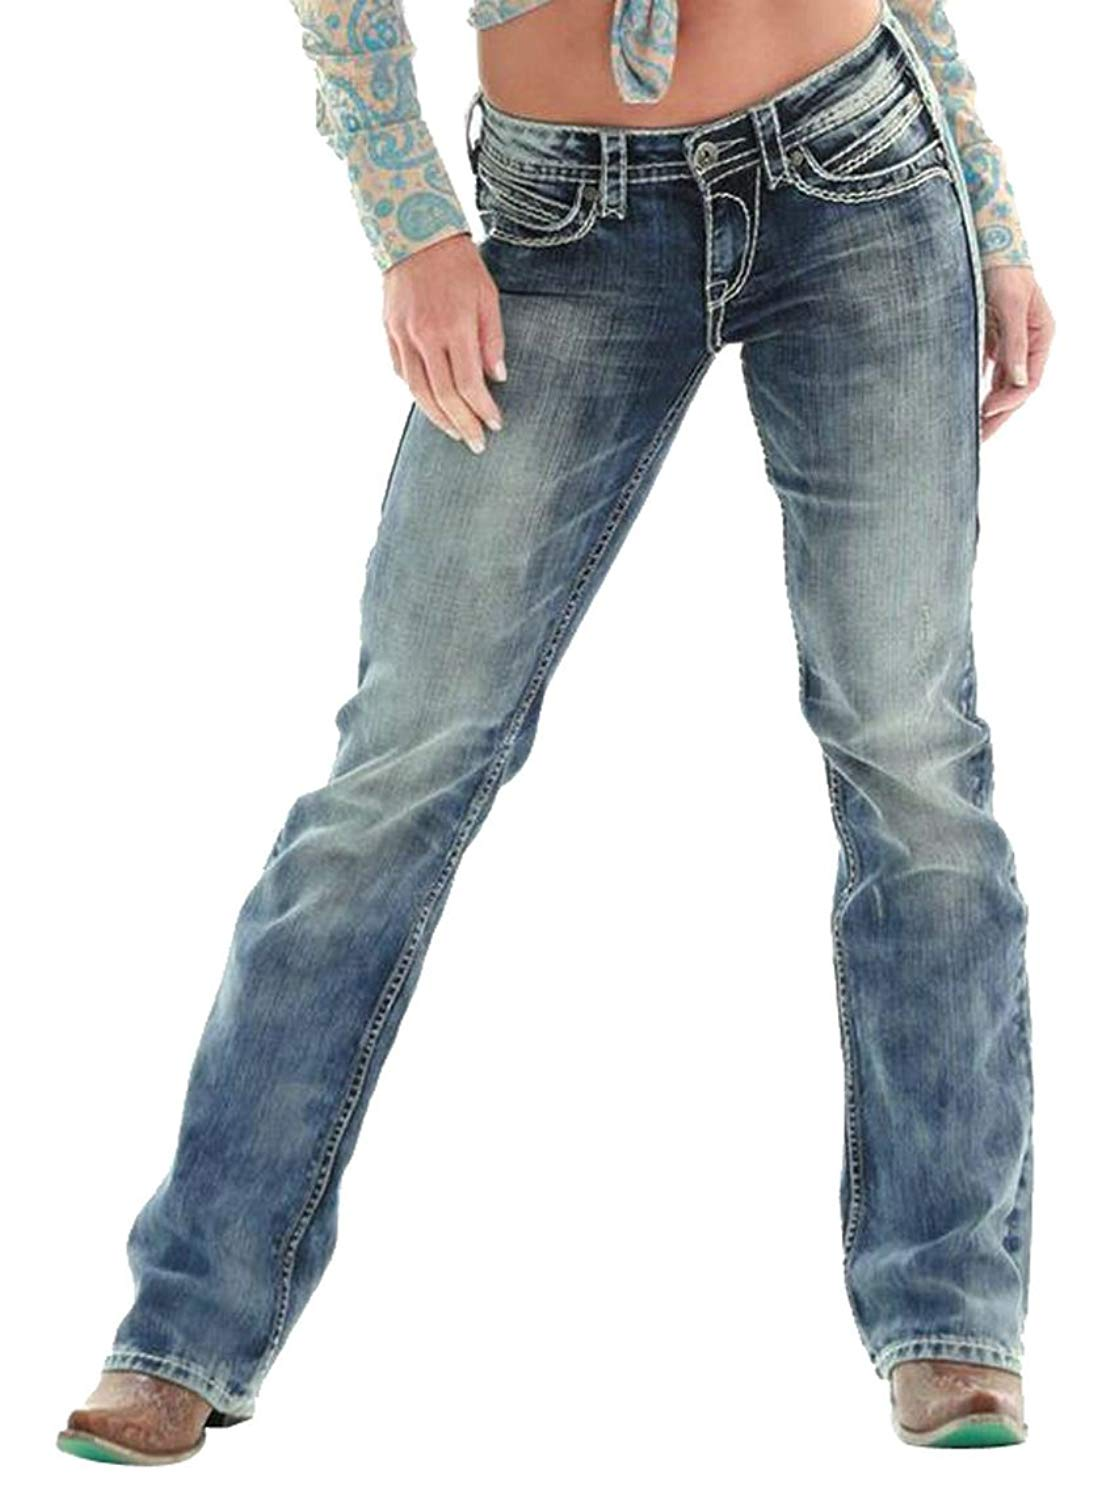 4669ae35b1a3c4 Get Quotations · SYTX Womens Sexy Low Waist Boot Cut Slim Fit Skinny Jeans  Denim Pants